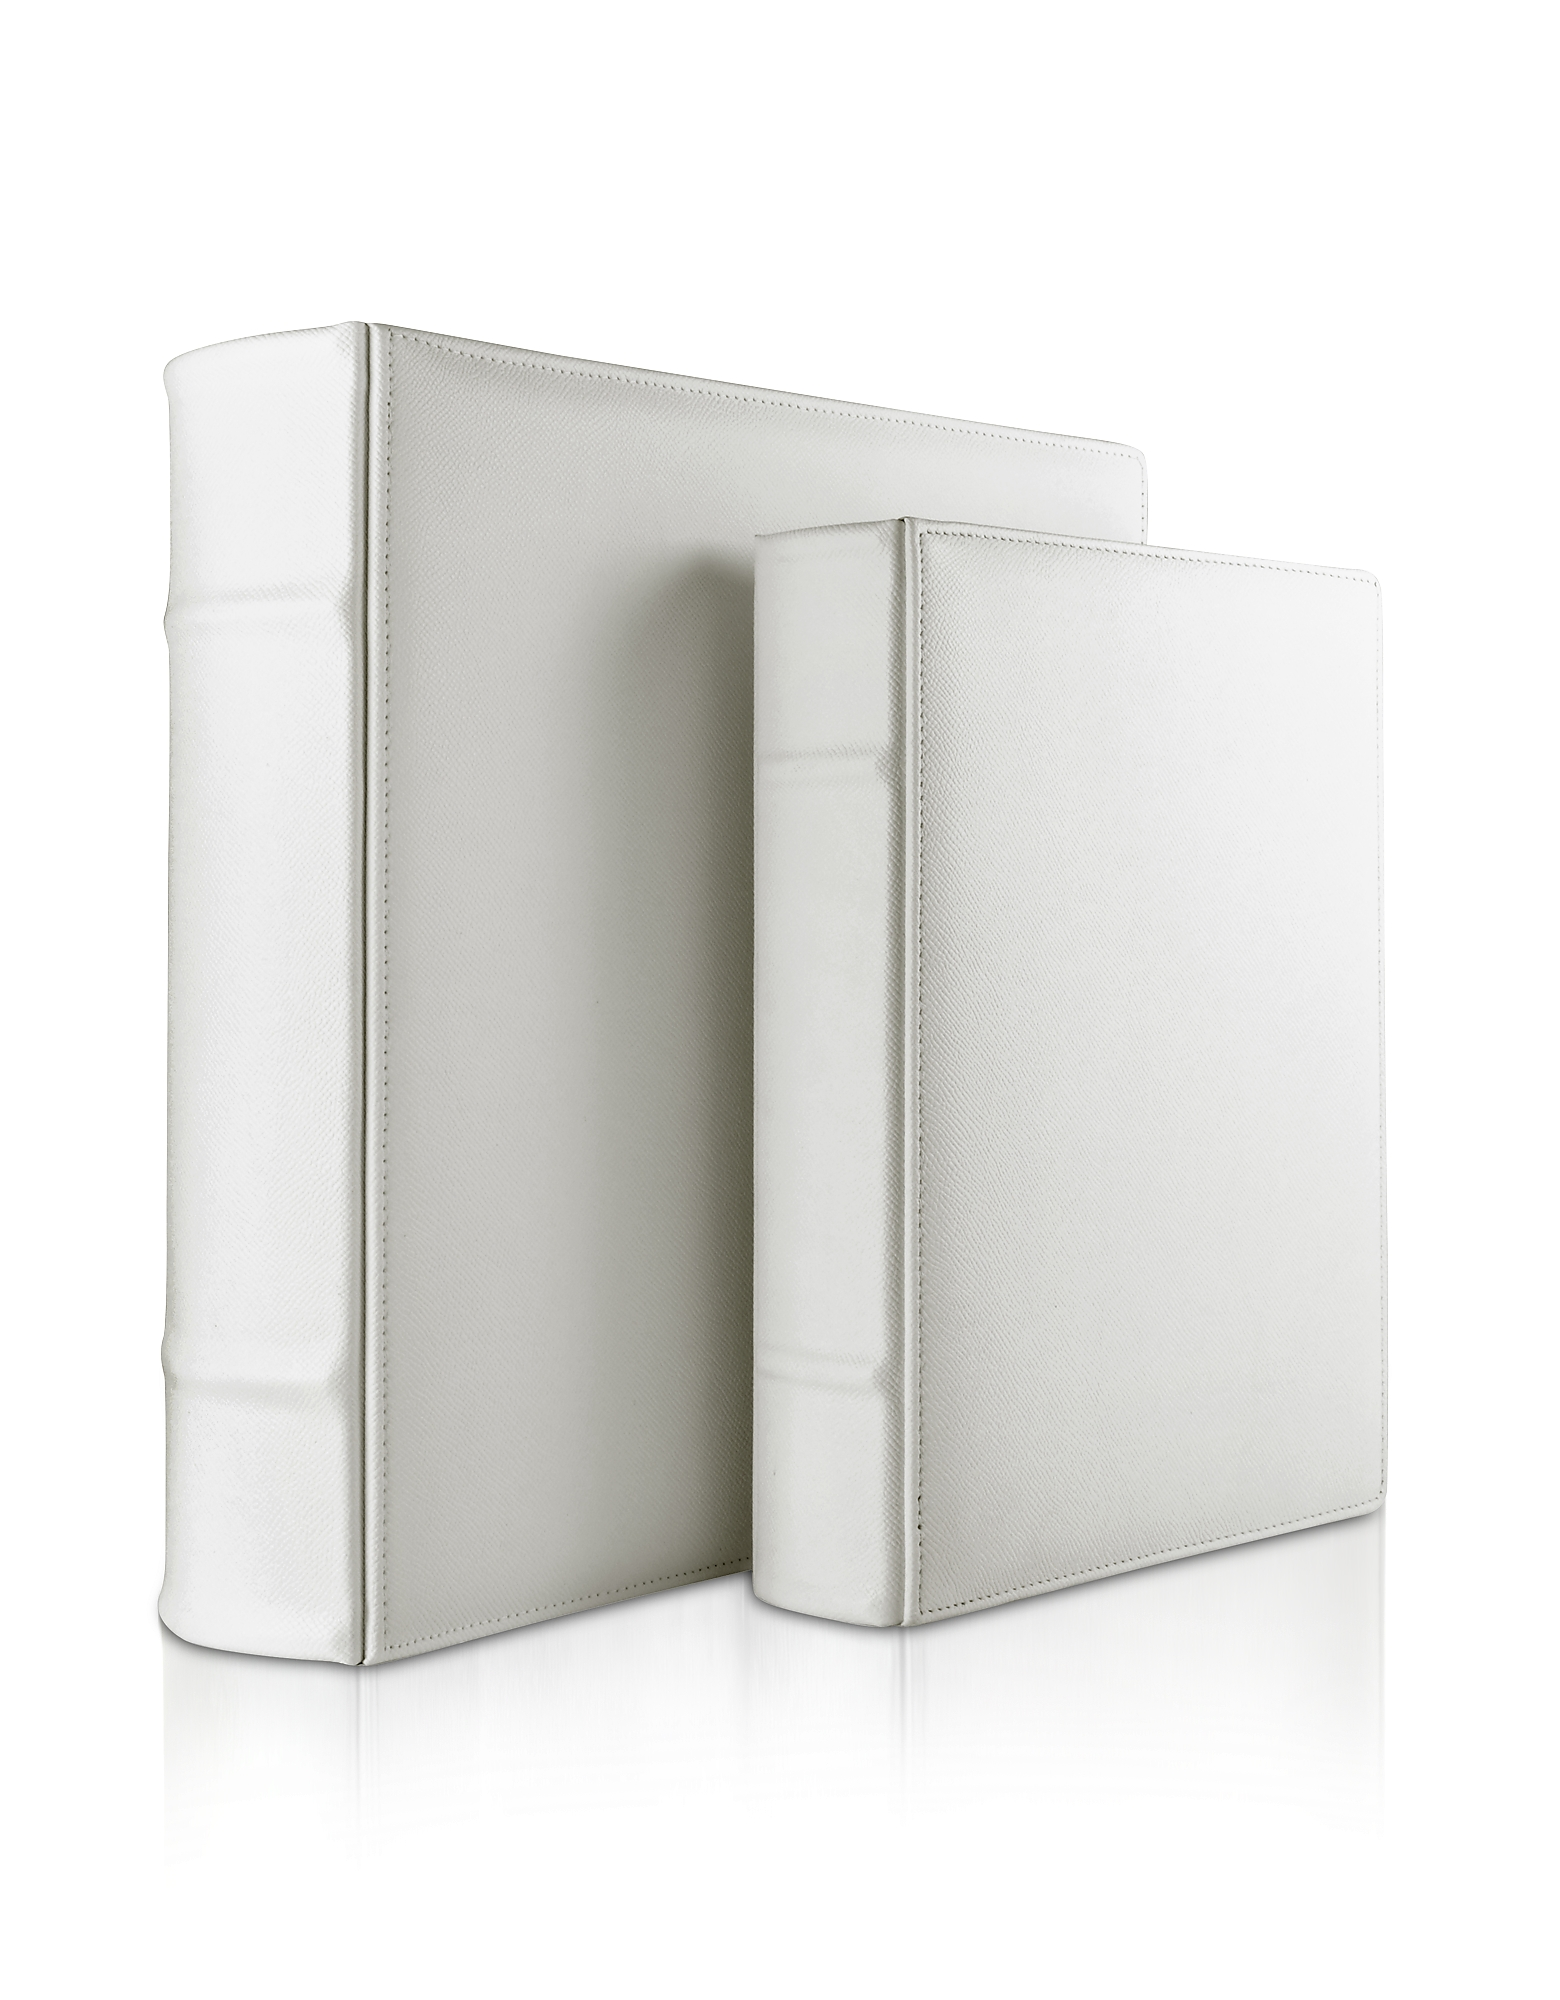 Pineider Picture Frames & Albums, City Chic - White Grained Calf Leather Photo Album